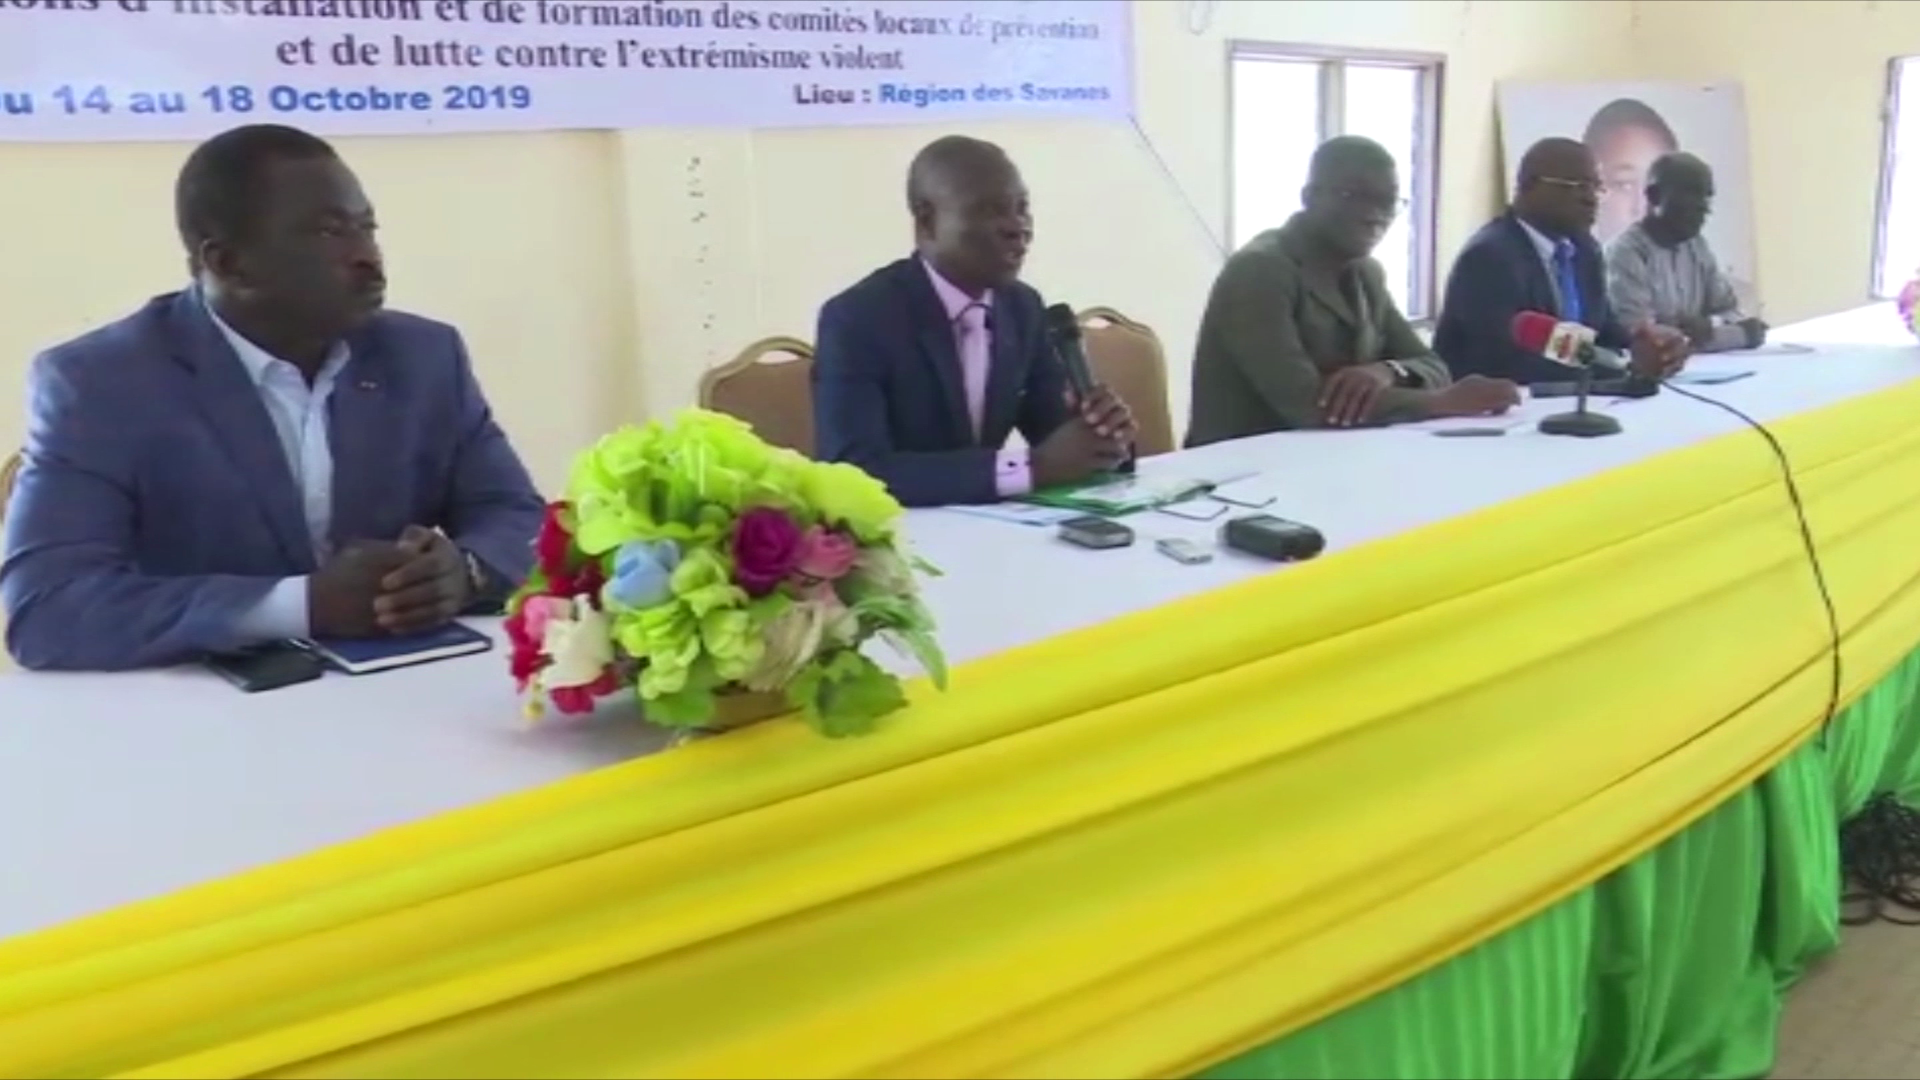 INSTALLATION COMITES LOCAUX DE PREVENTION ET DE LUTTE CONTRE L'EXTREMISME VIOLENT/SAVANES